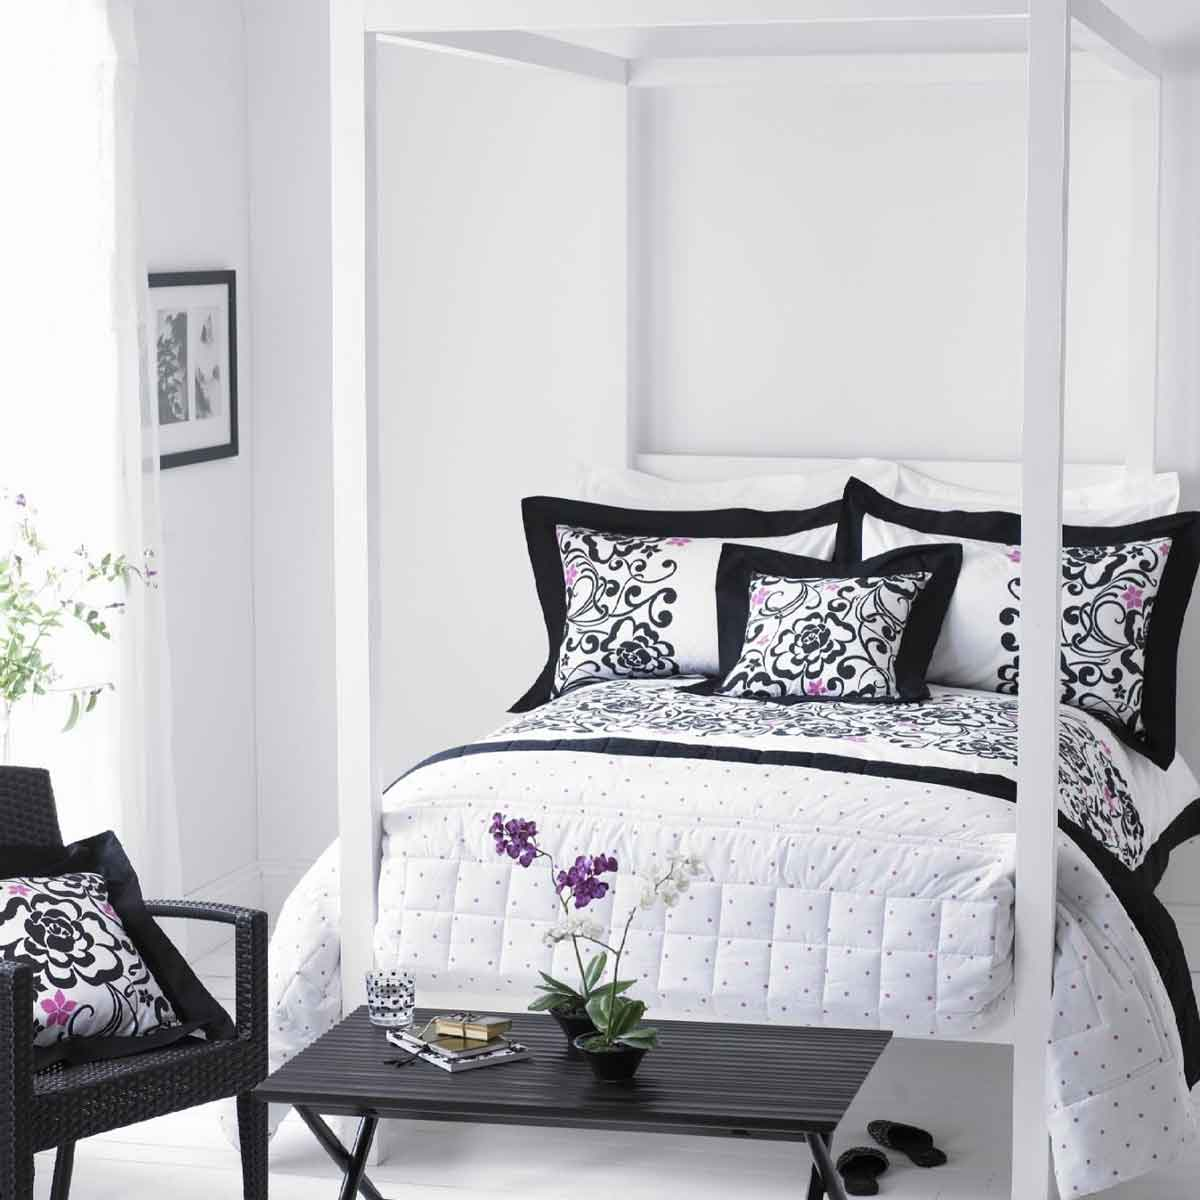 Black and white bedroom decorating ideas dream house experience - Design for bedroom pics ...